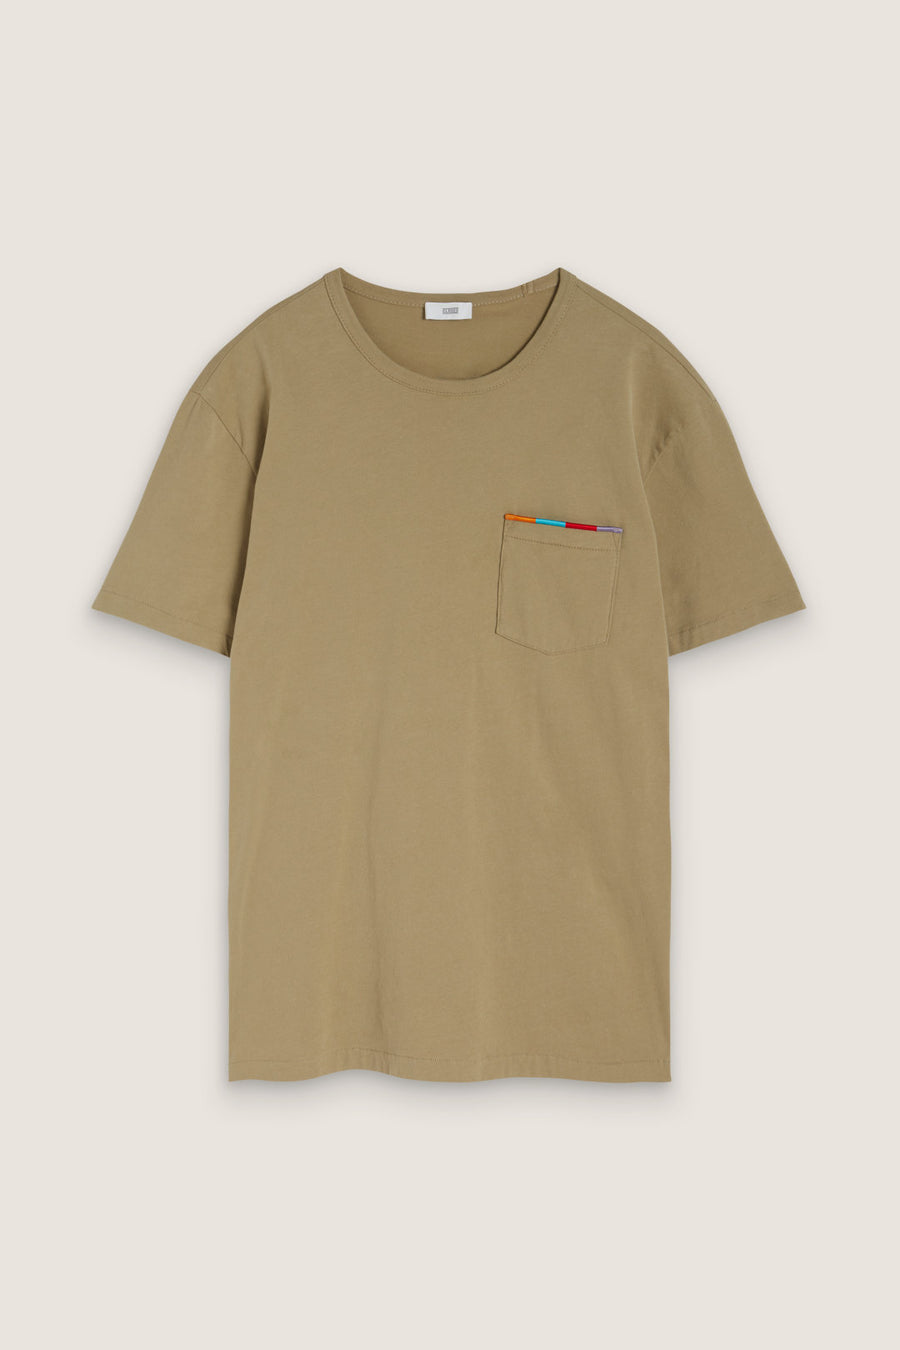 T-Shirt with Embroidery - Cut Hay - Pavilion